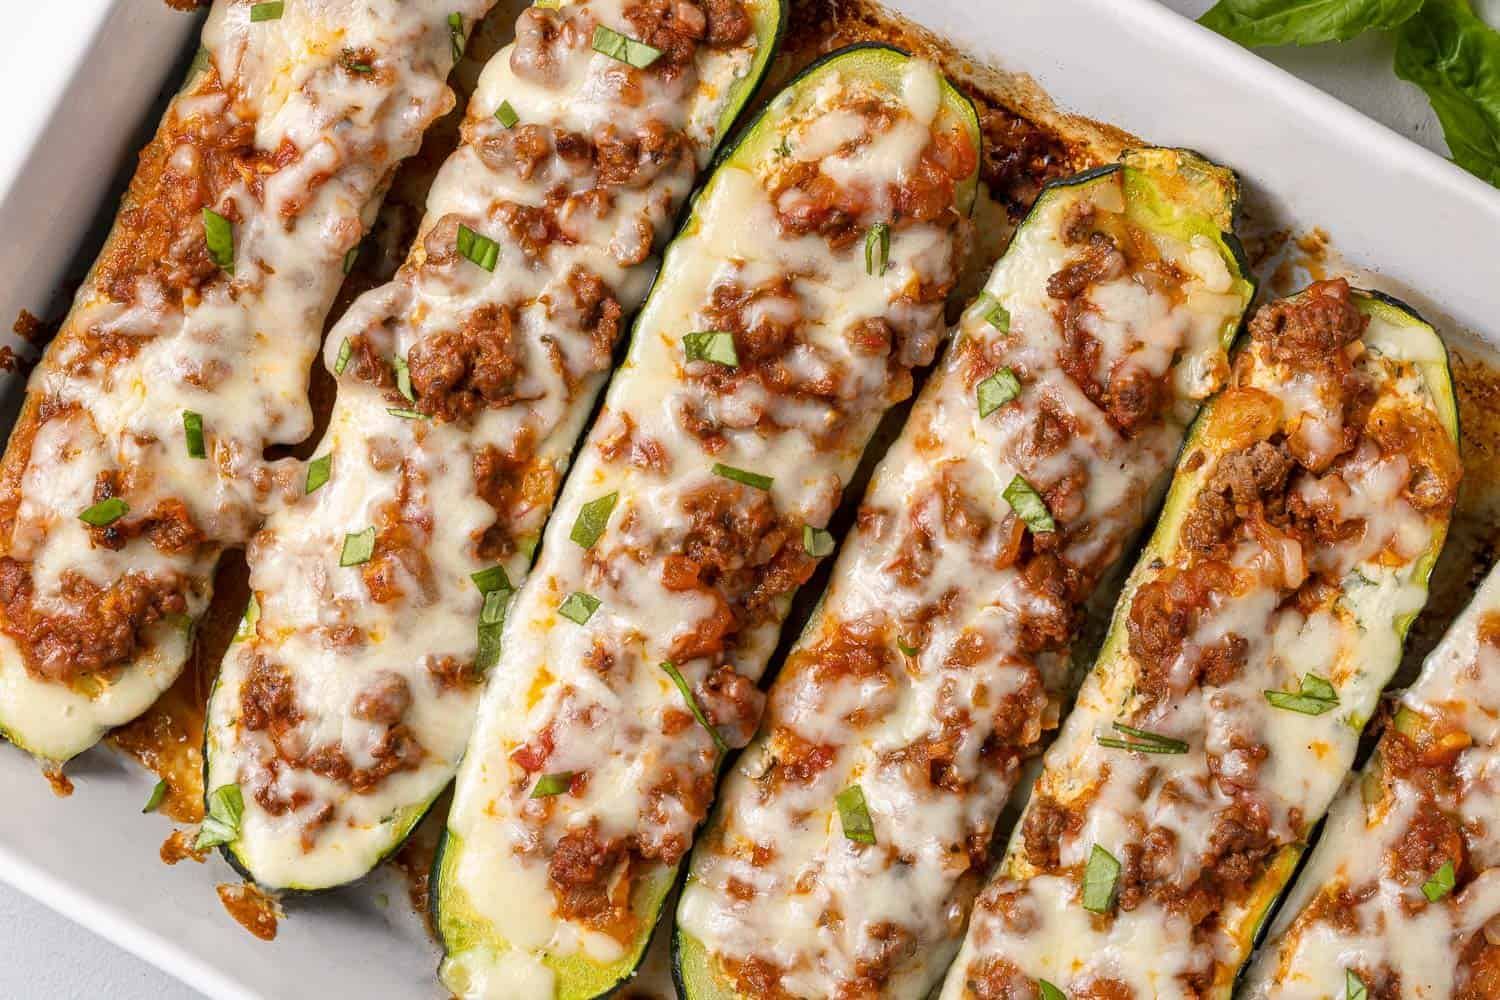 Stuffed zucchini topped with meat sauce and cheese.